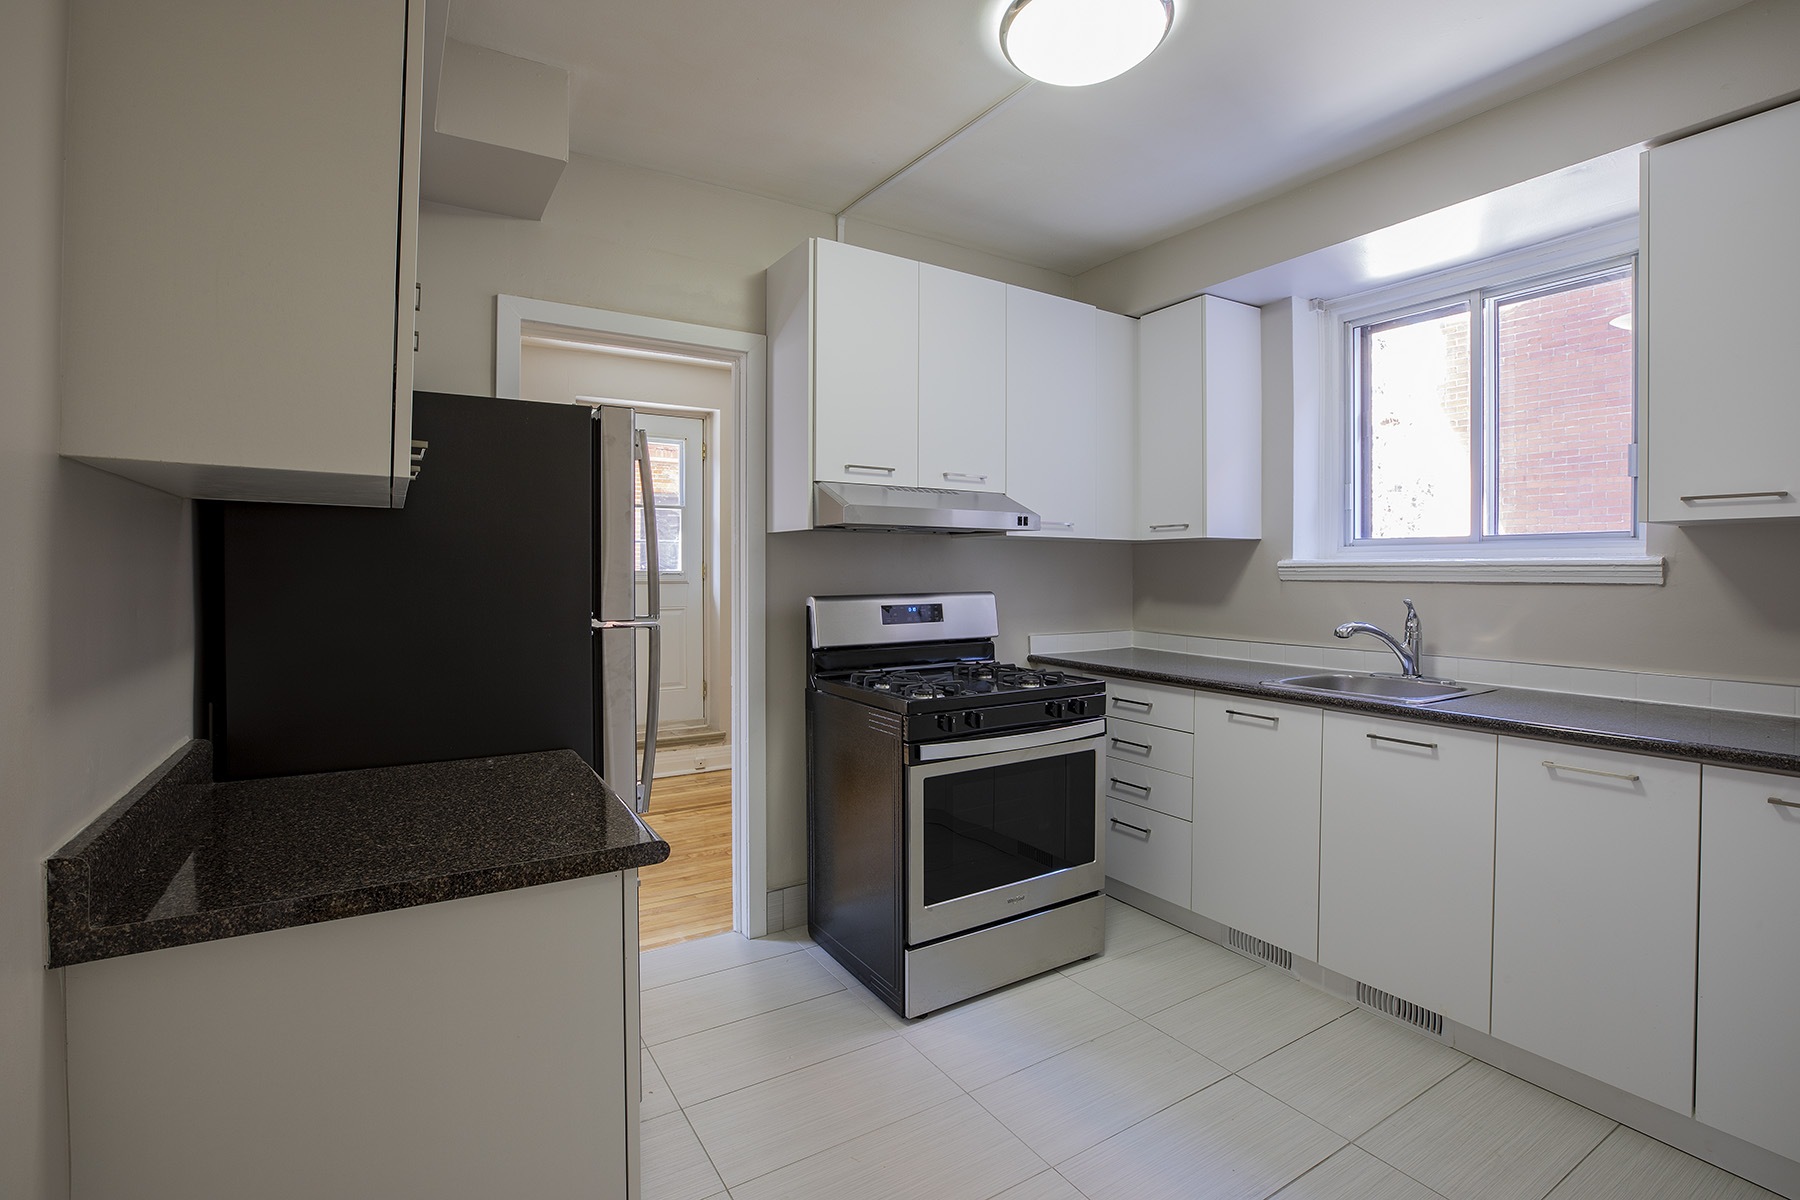 2 bedroom Apartments for rent in Cote-des-Neiges at 5000 Clanranald - Photo 08 - RentQuebecApartments – L401548